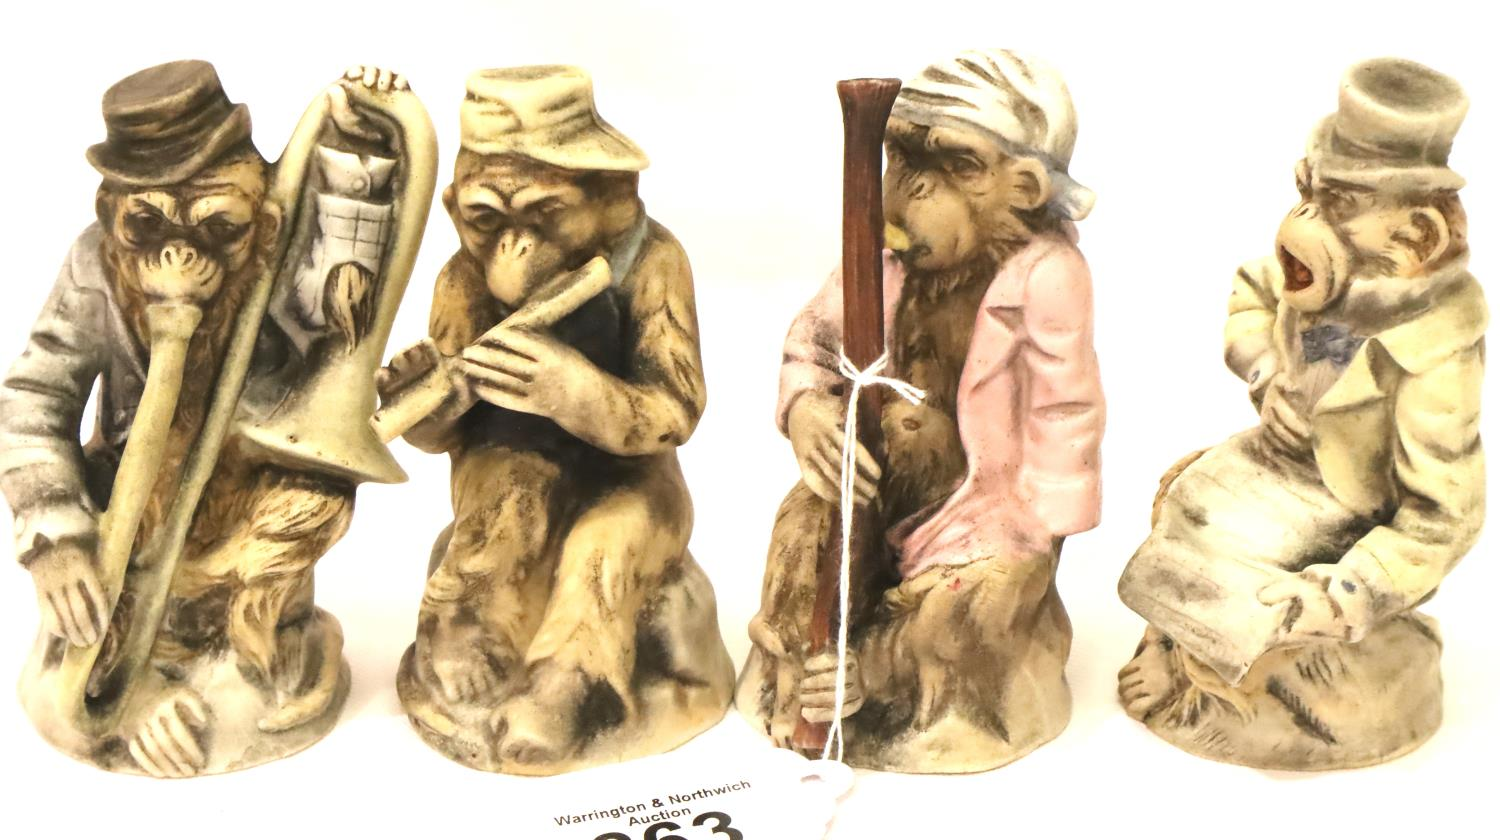 Set of four 19th/20th century Chinese monkey band figures, bisque glazed. largest H: 15 cm. P&P